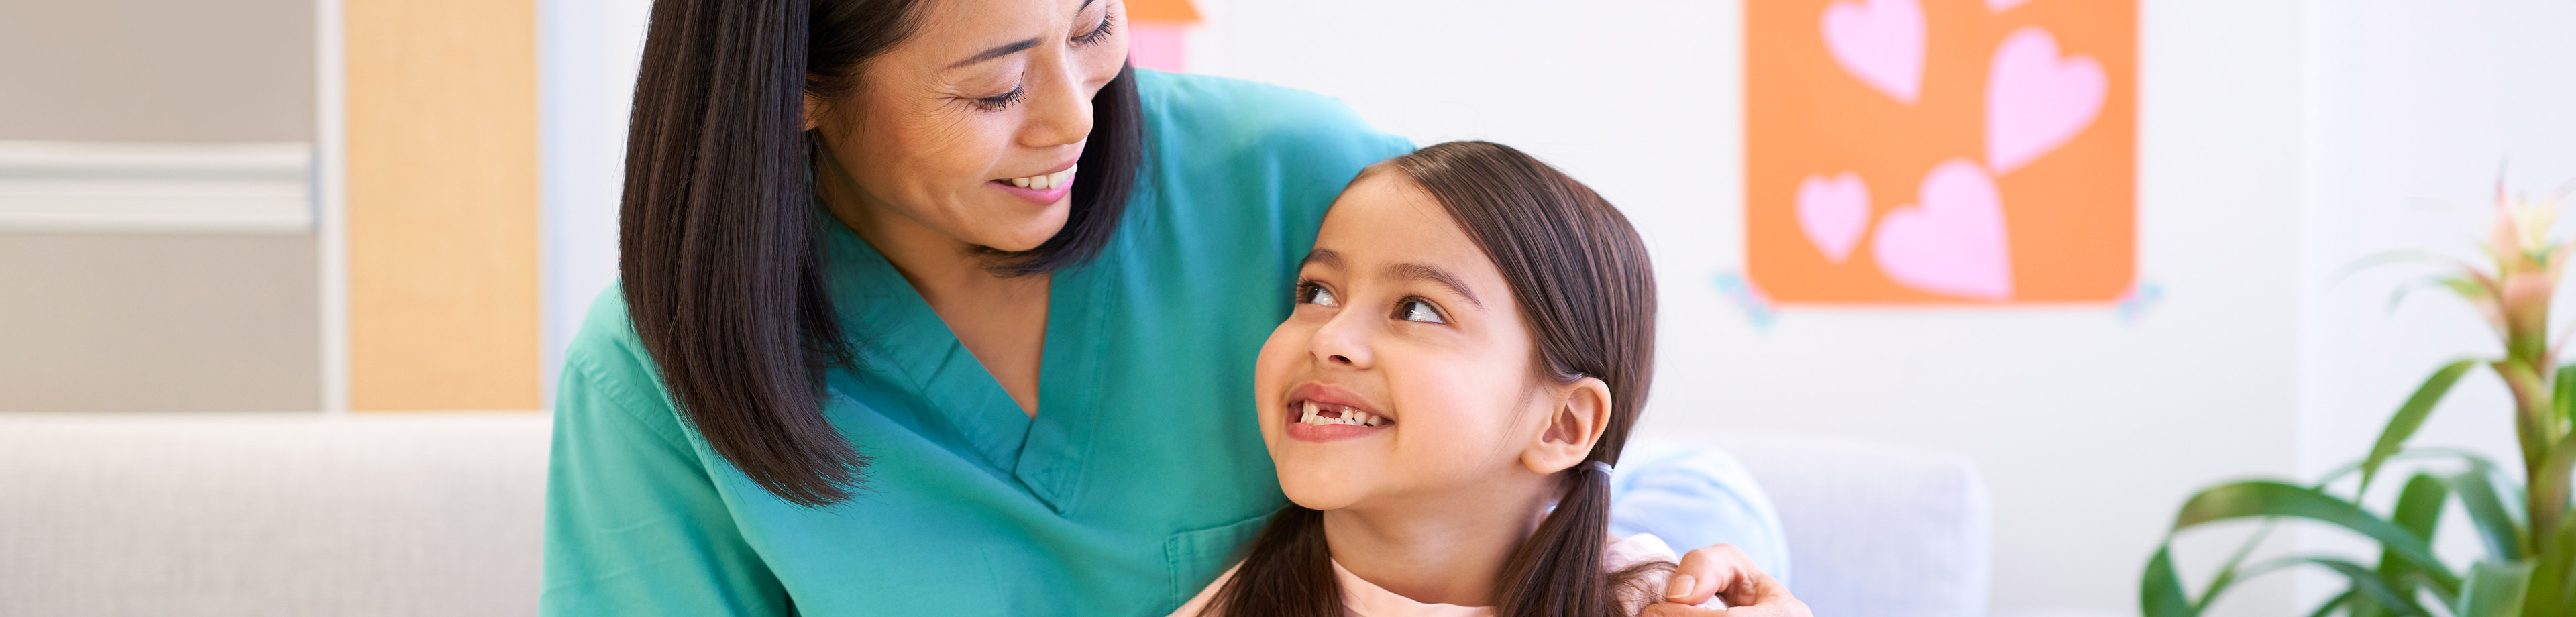 Caregiver with Pediatric Patient